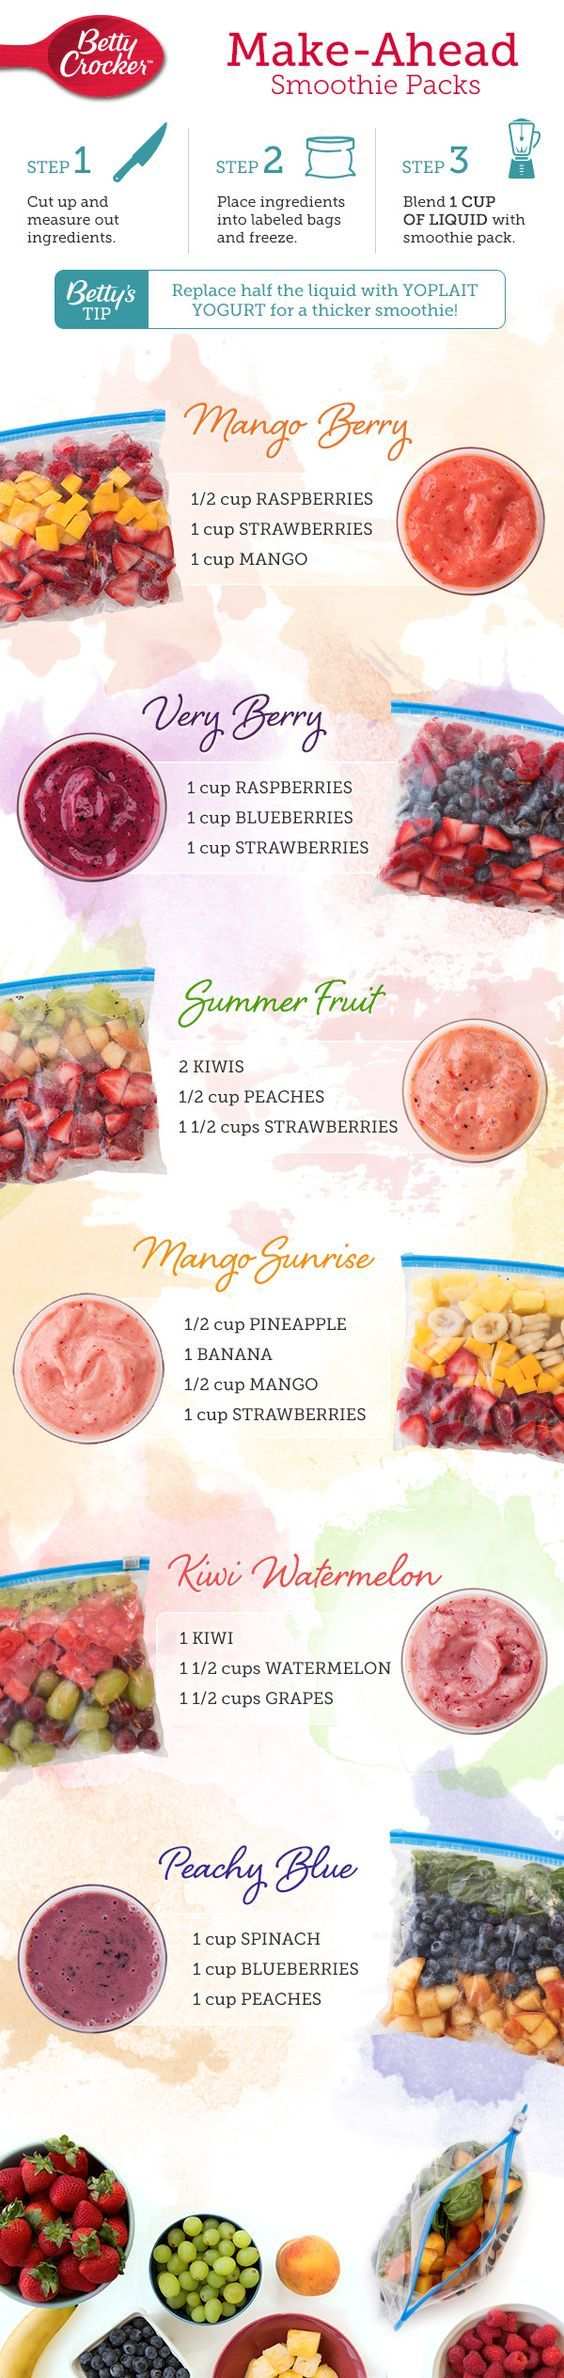 Simplify your morning routine by keeping a freezer full of smoothie packs on hand so you can wake, shake and be on your way!: